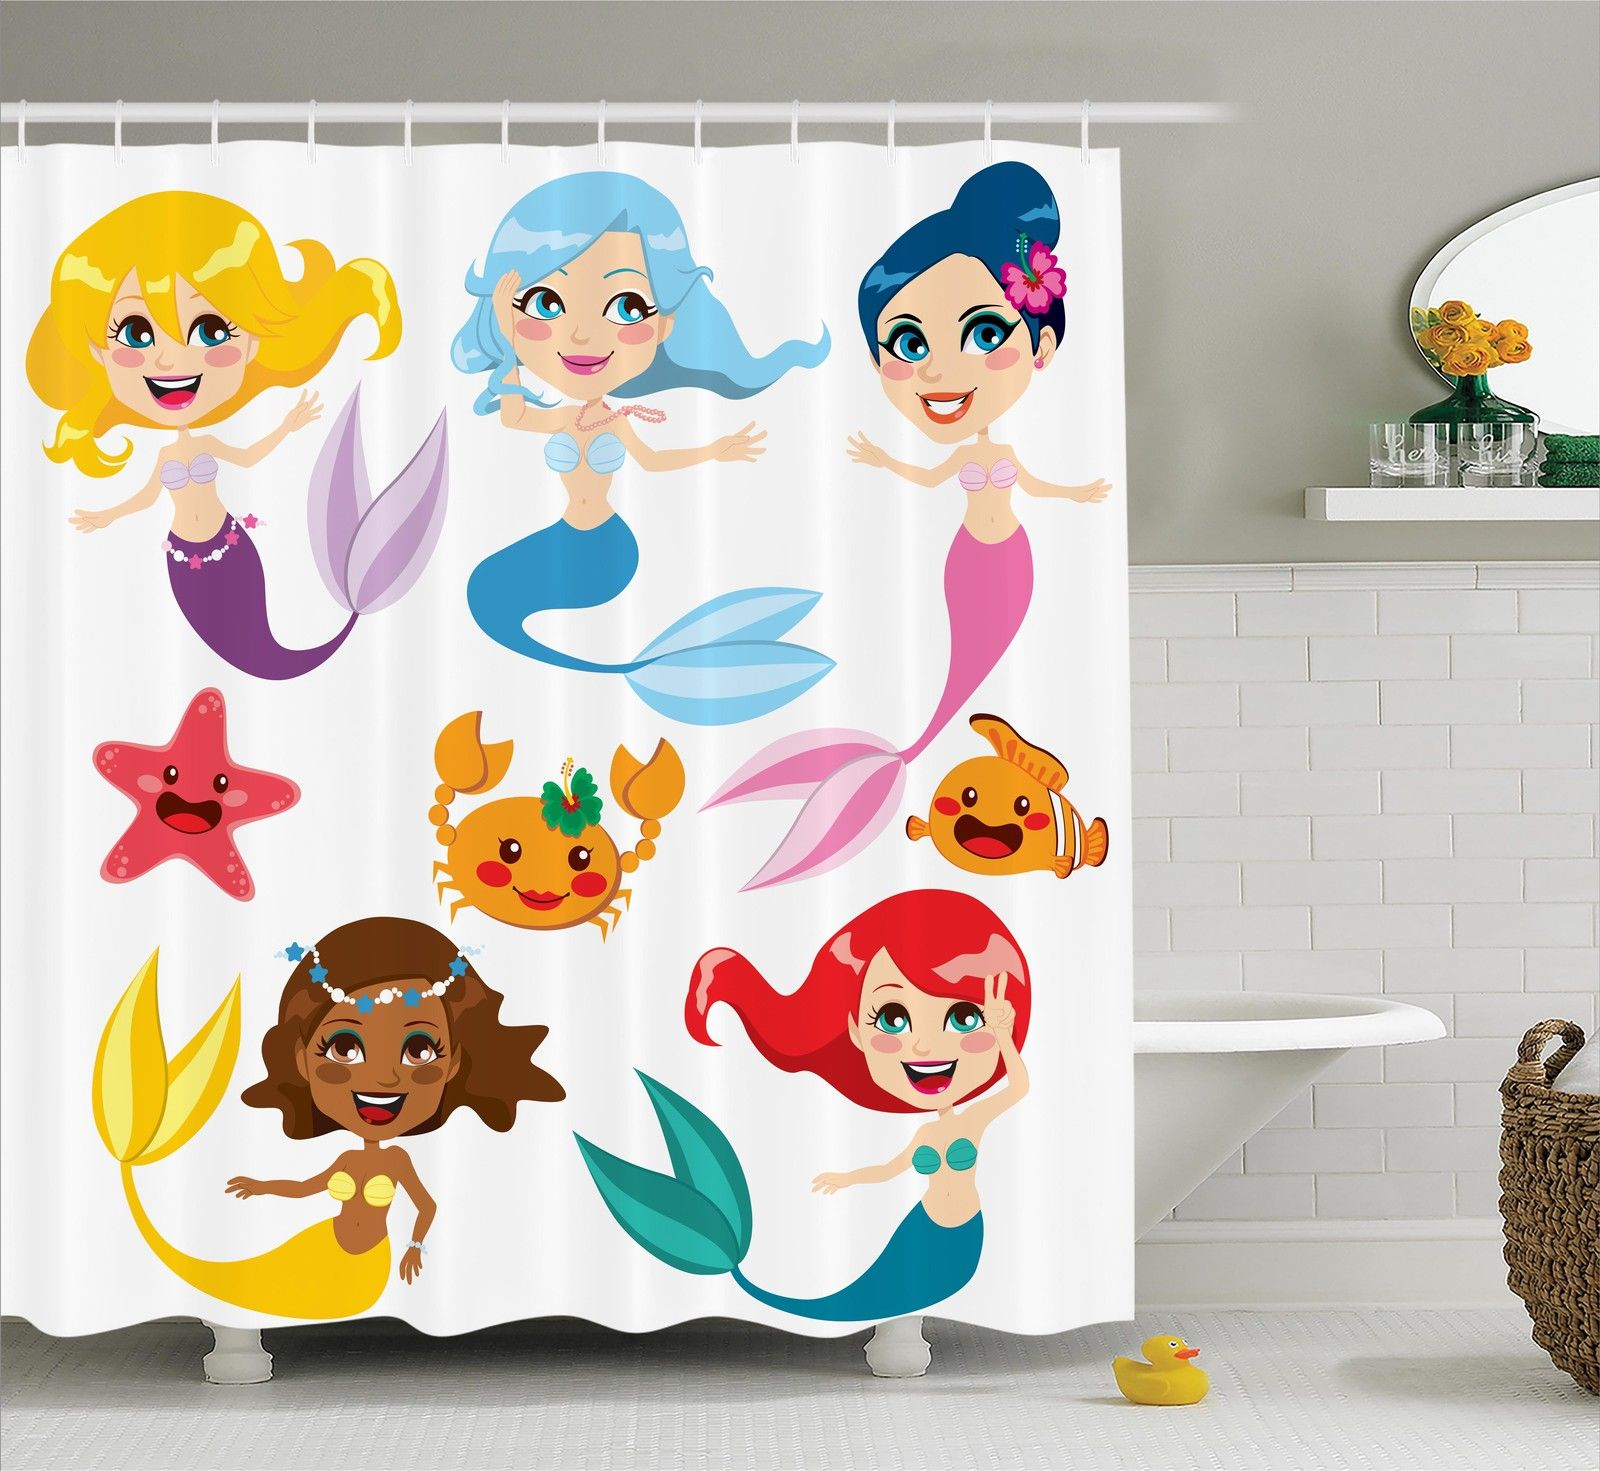 Mermaid Decor Shower Curtain Set, Collection Of Cute Colorful Mermaids And Sea Friends Kids Cheering Joyful, Bathroom Accessories, 69W X 70L Inches, By Ambesonne